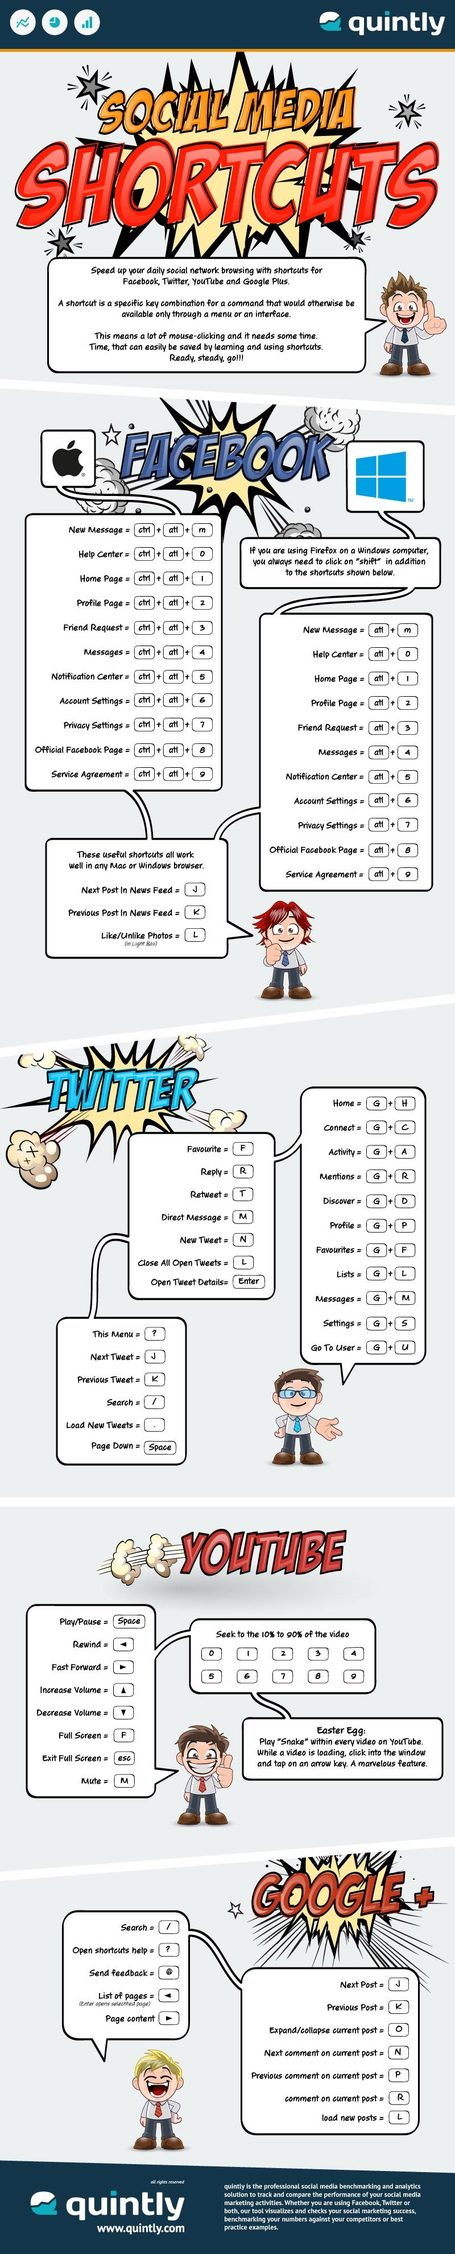 Social Media: Infographic Shortcuts for Facebook, Twitter, YouTube and Google+ | IKT och iPad i undervisningen | Scoop.it